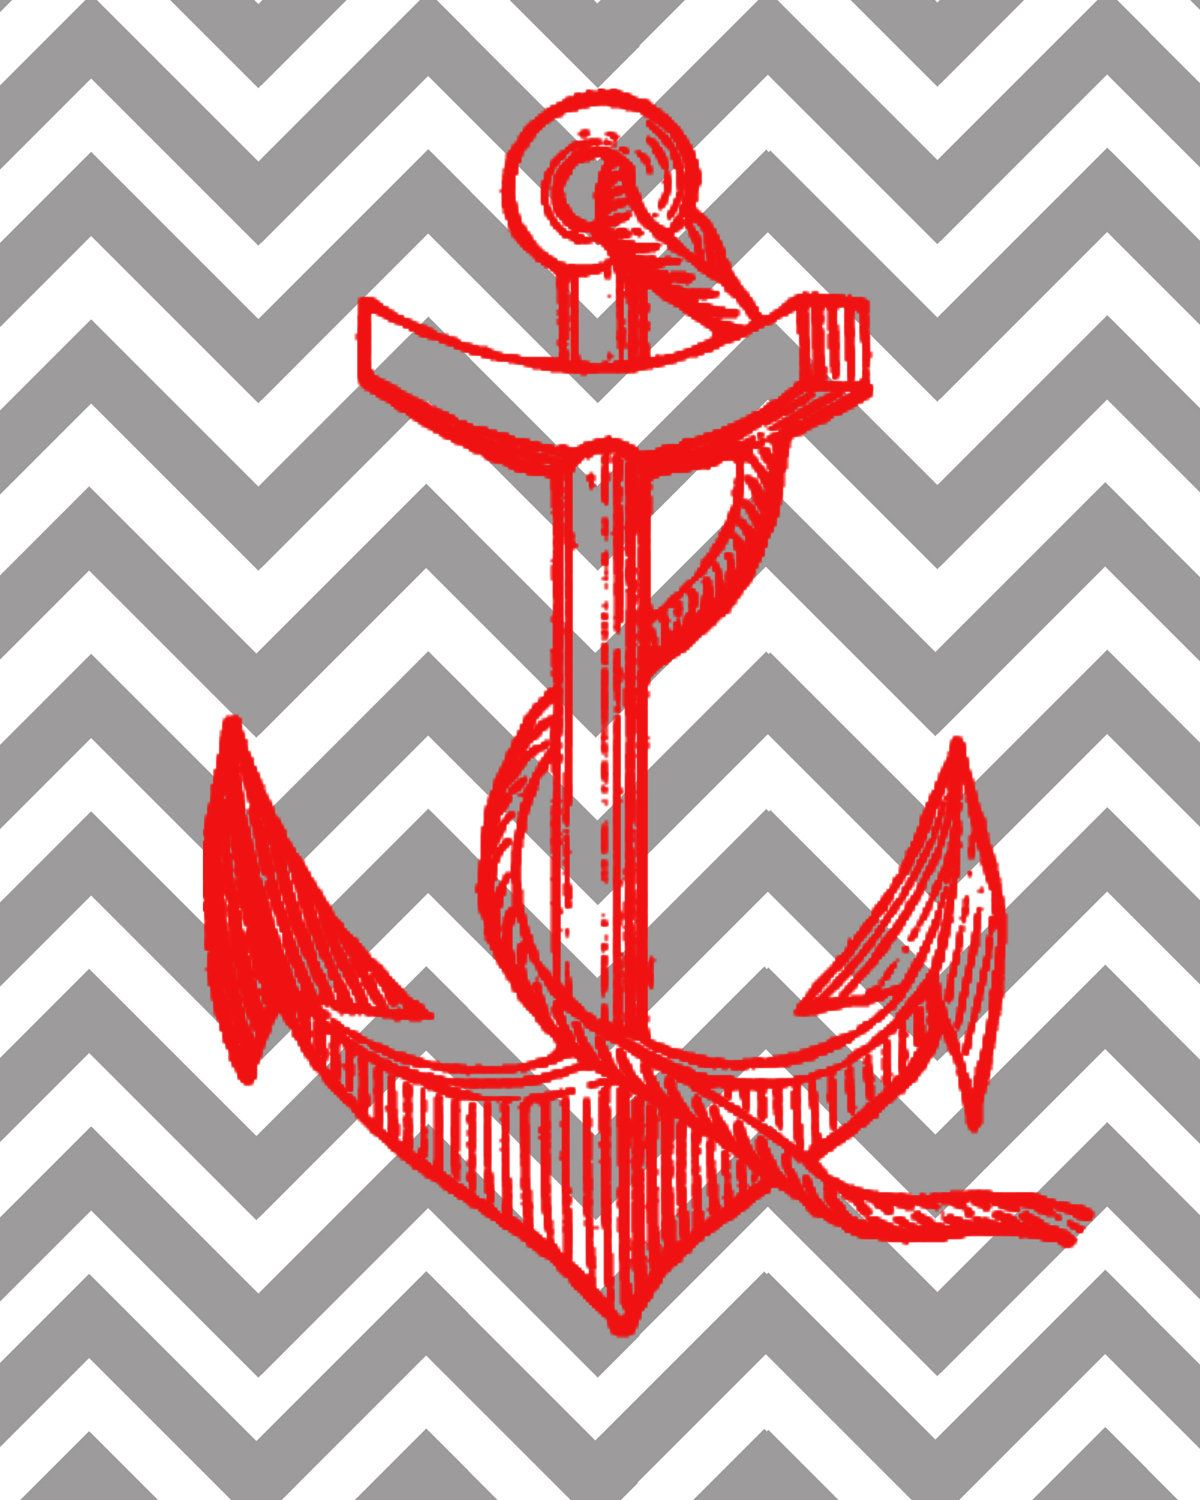 Chevron Print Background With Anchor - Nautical anchor with chevron background 8x10 print